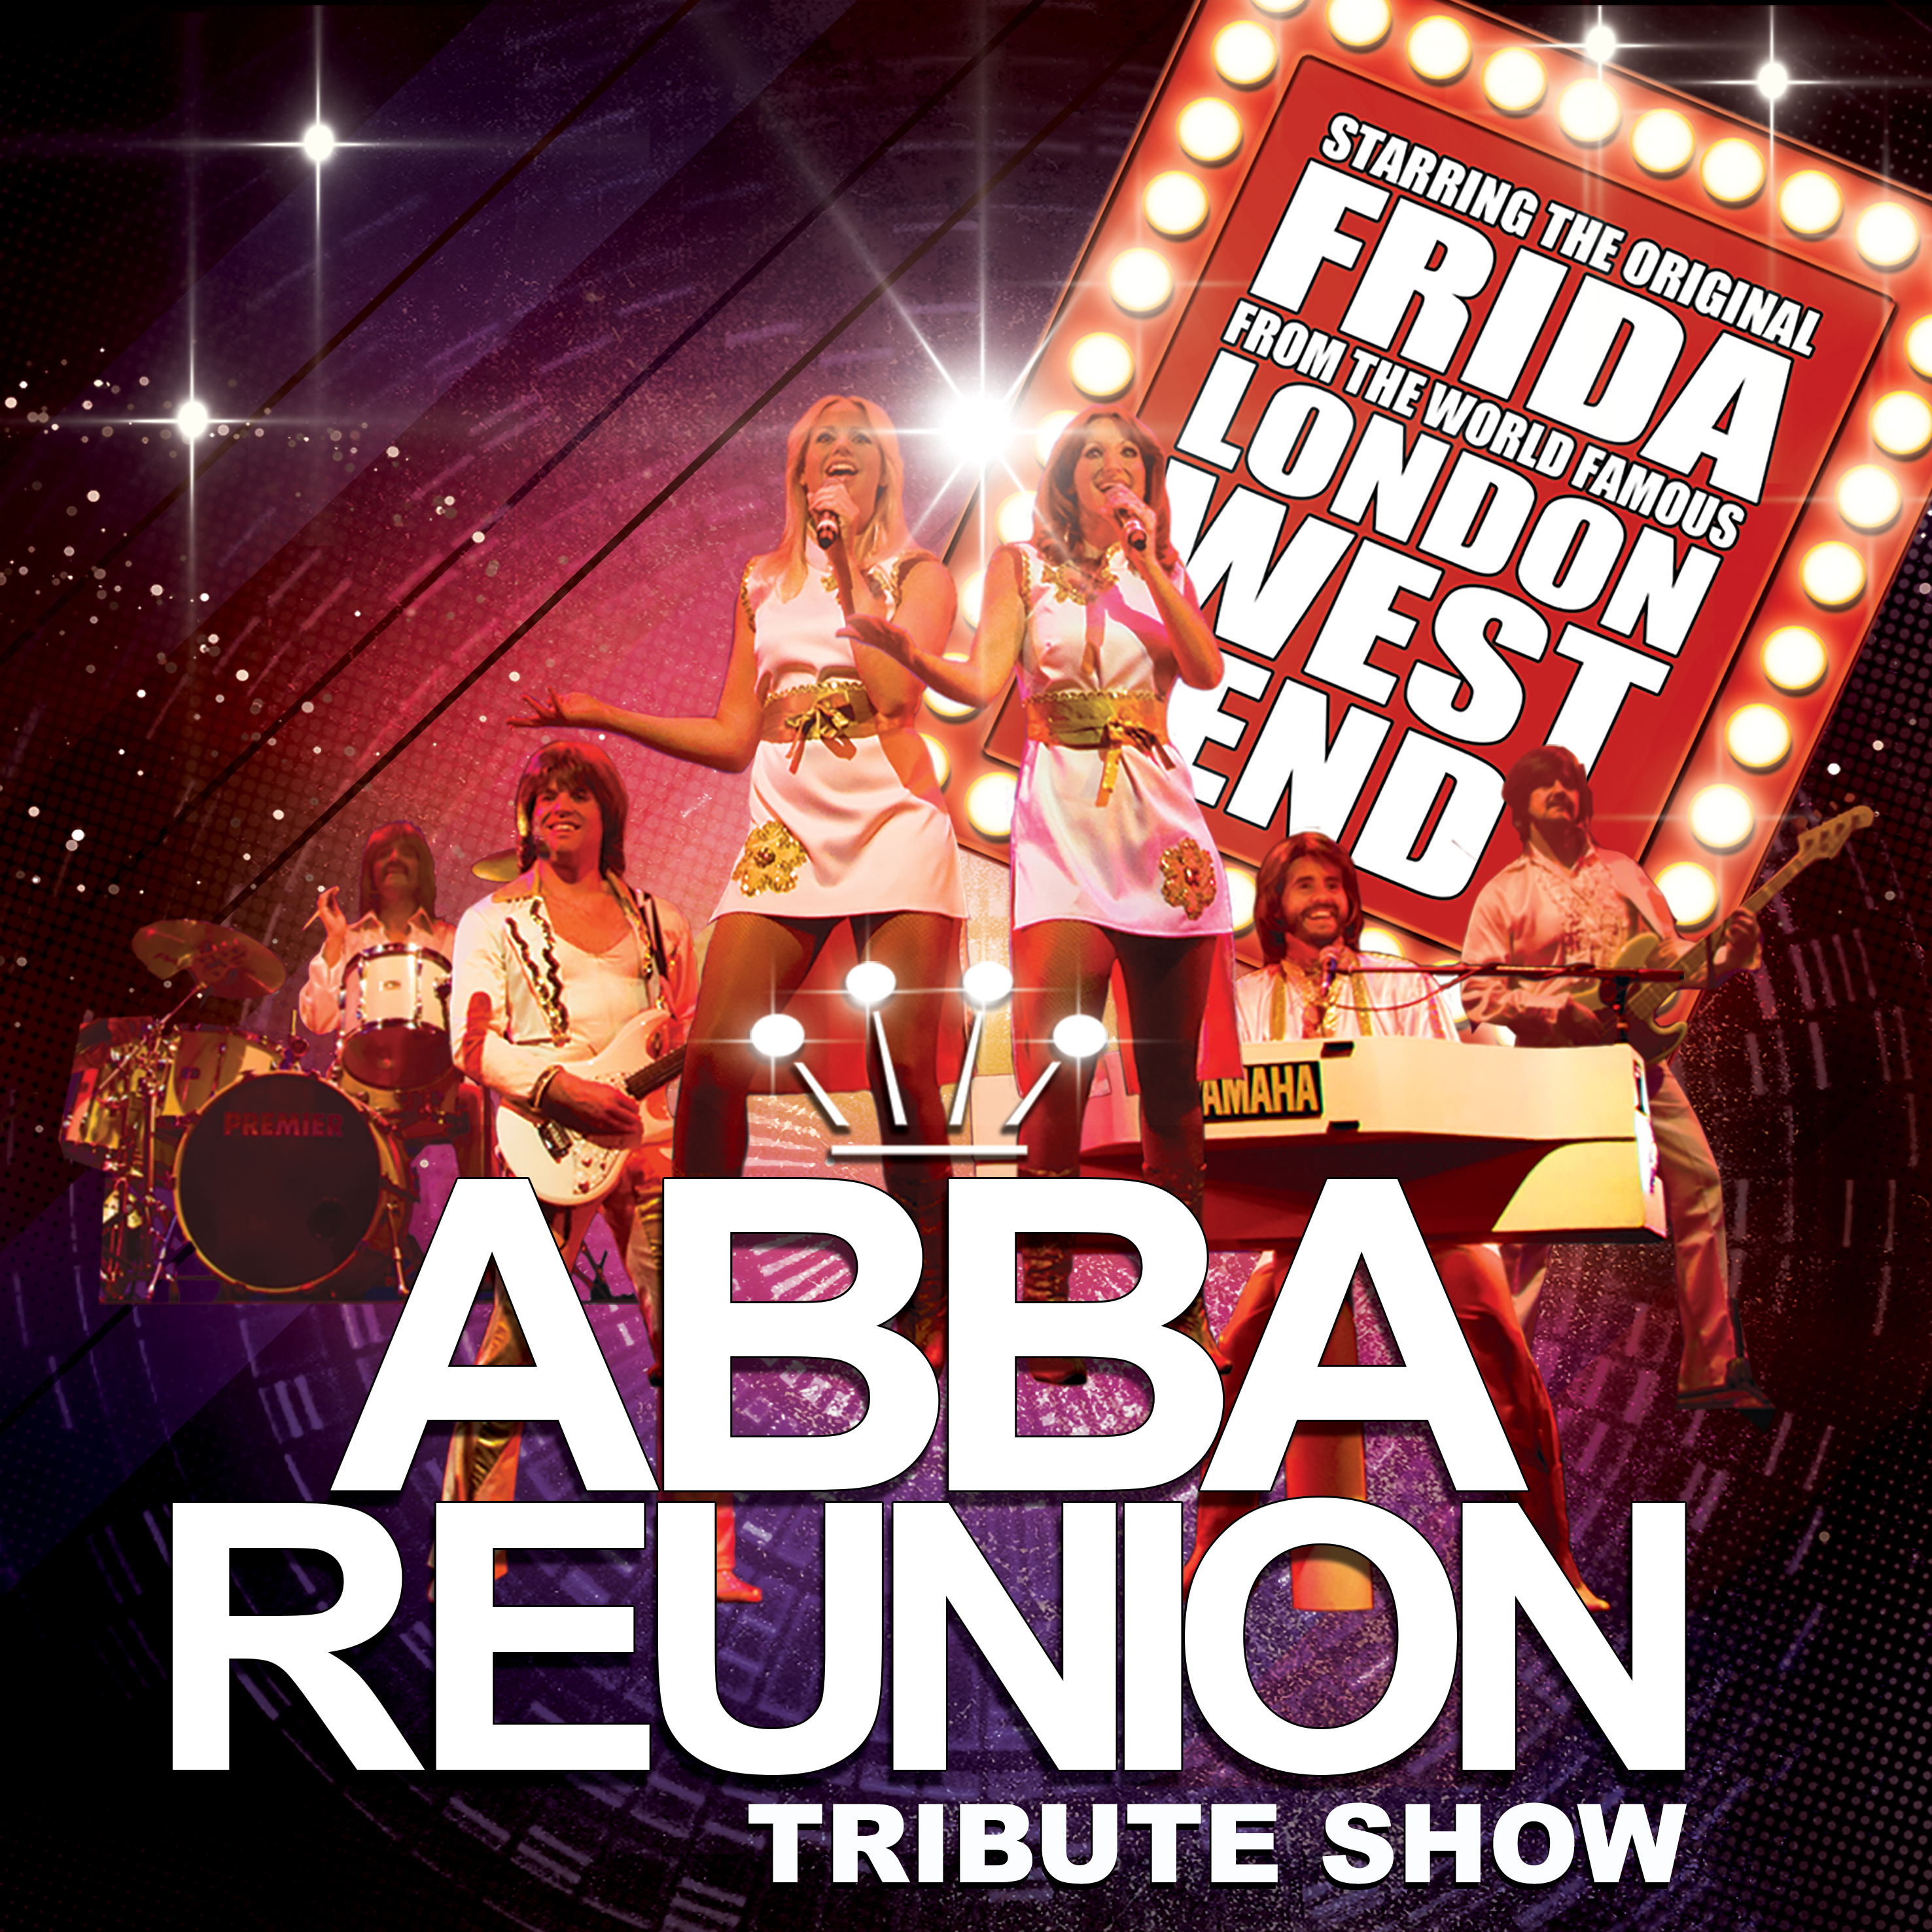 ABBA Reunion the tribute band performing at a show